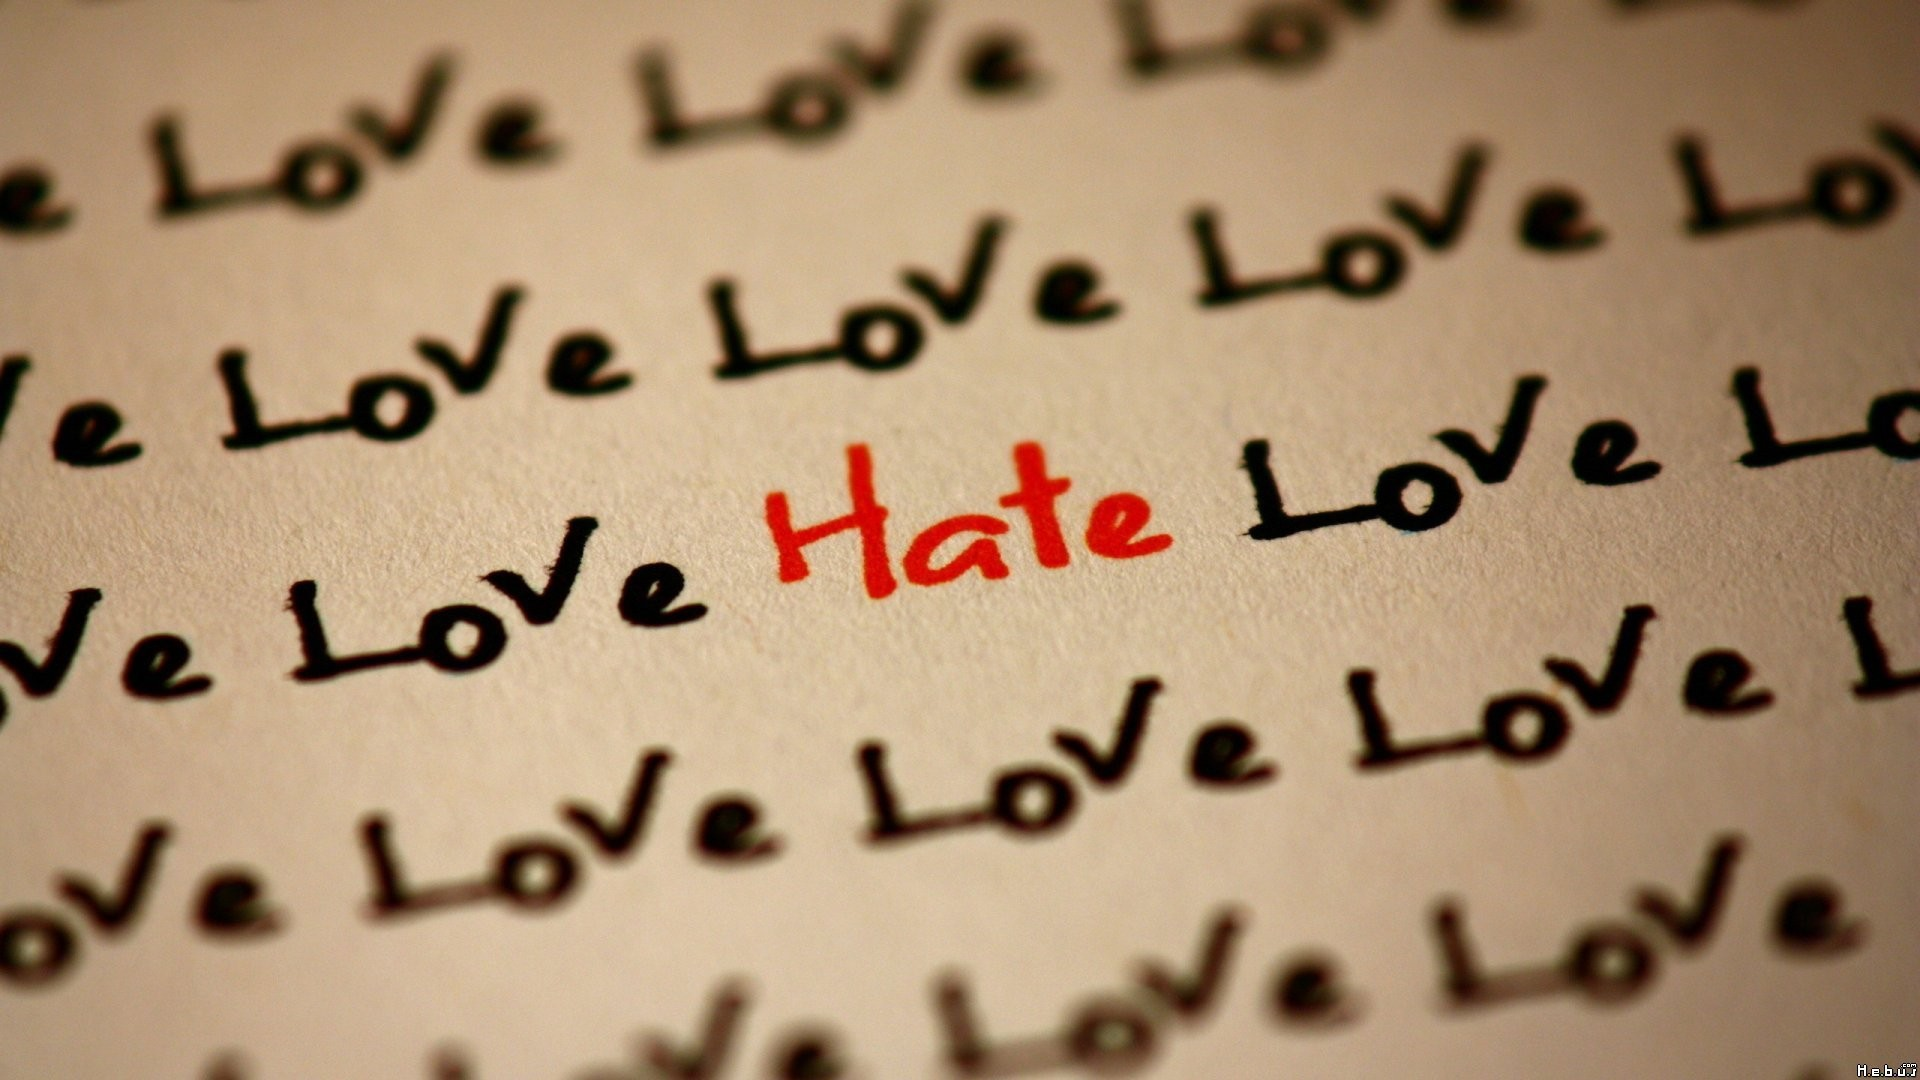 Love And Hate Quotes Love Text Quotes Hate Wallpaper  1920X1080  181713  Wallpaperup